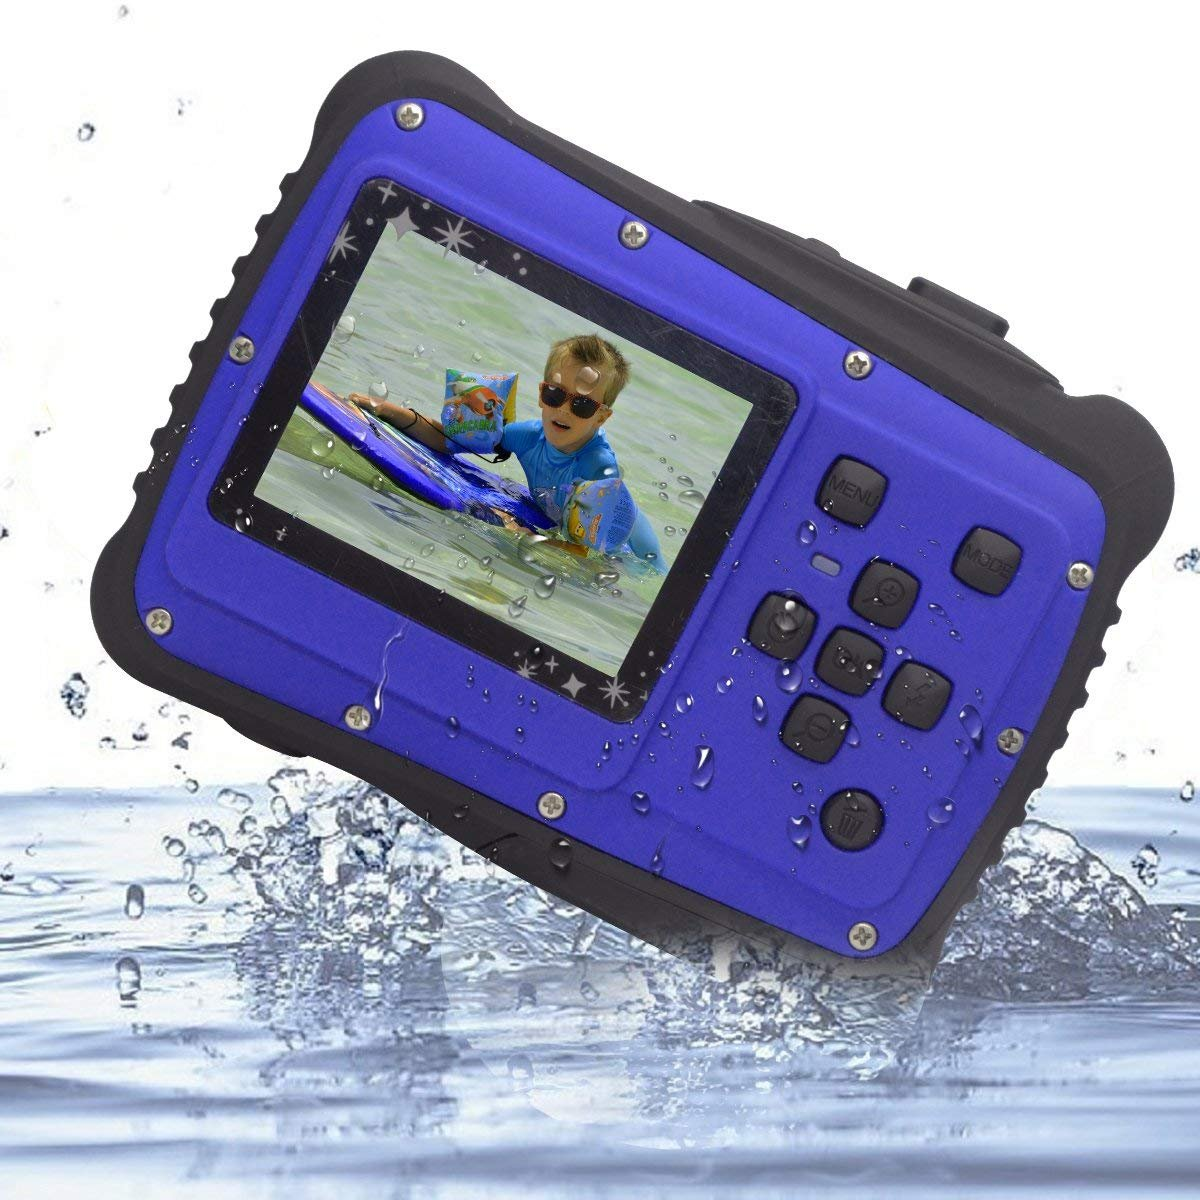 Kids Digital Camera, Vmotal Waterproof Camera for Kids with 2.0 inch TFT Display, 8X Digital Zoom 8MP Waterproof Digital Camera for Children Boys Girls Gift Toys (Blue) GD 5265